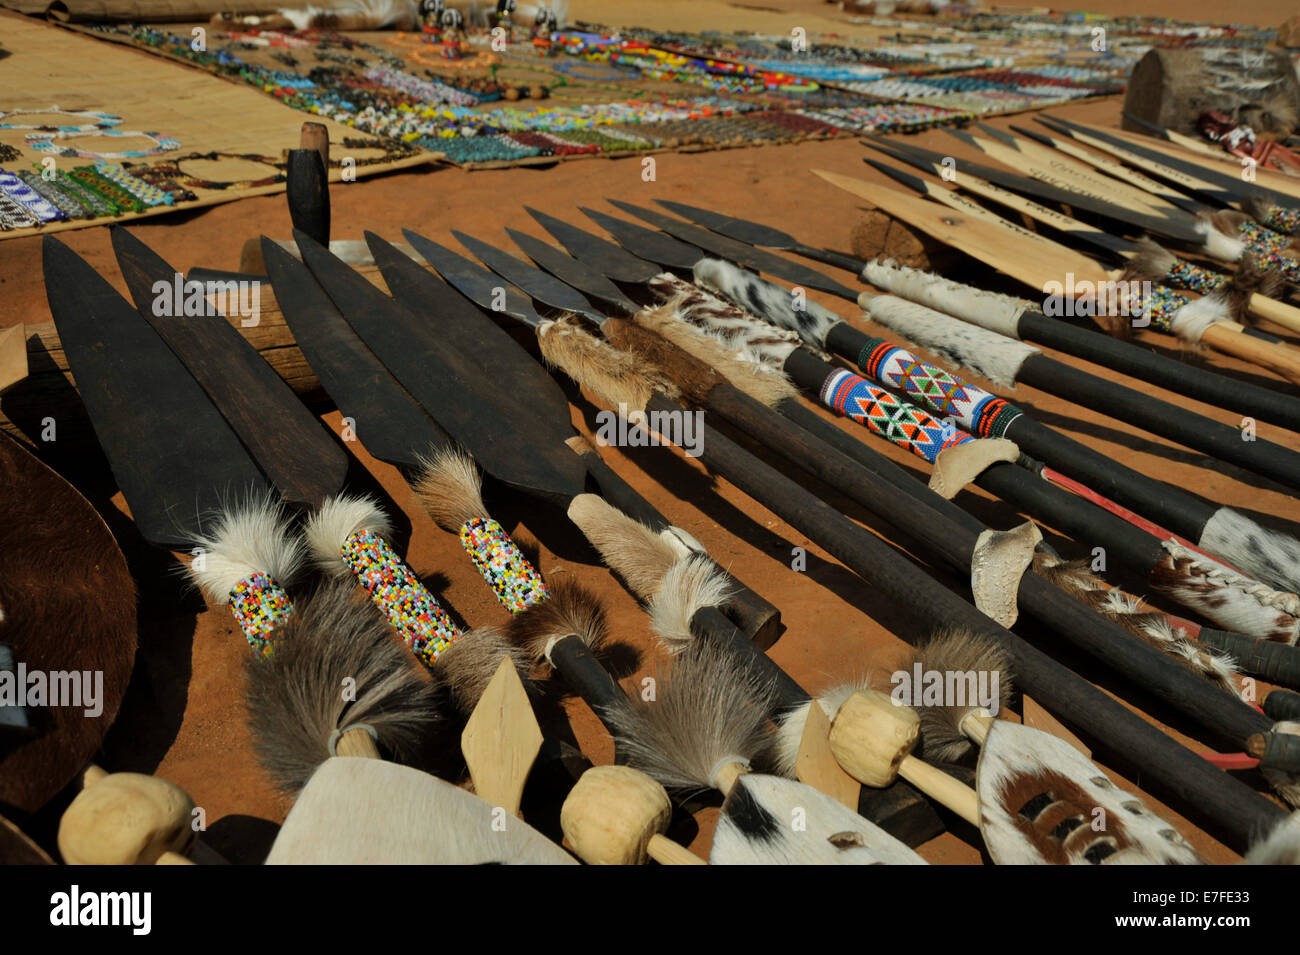 Eshowe, KwaZulu-Natal, South Africa, collection of Zulu spears and curios for sale, Shakaland culture village, objects, - Stock Image